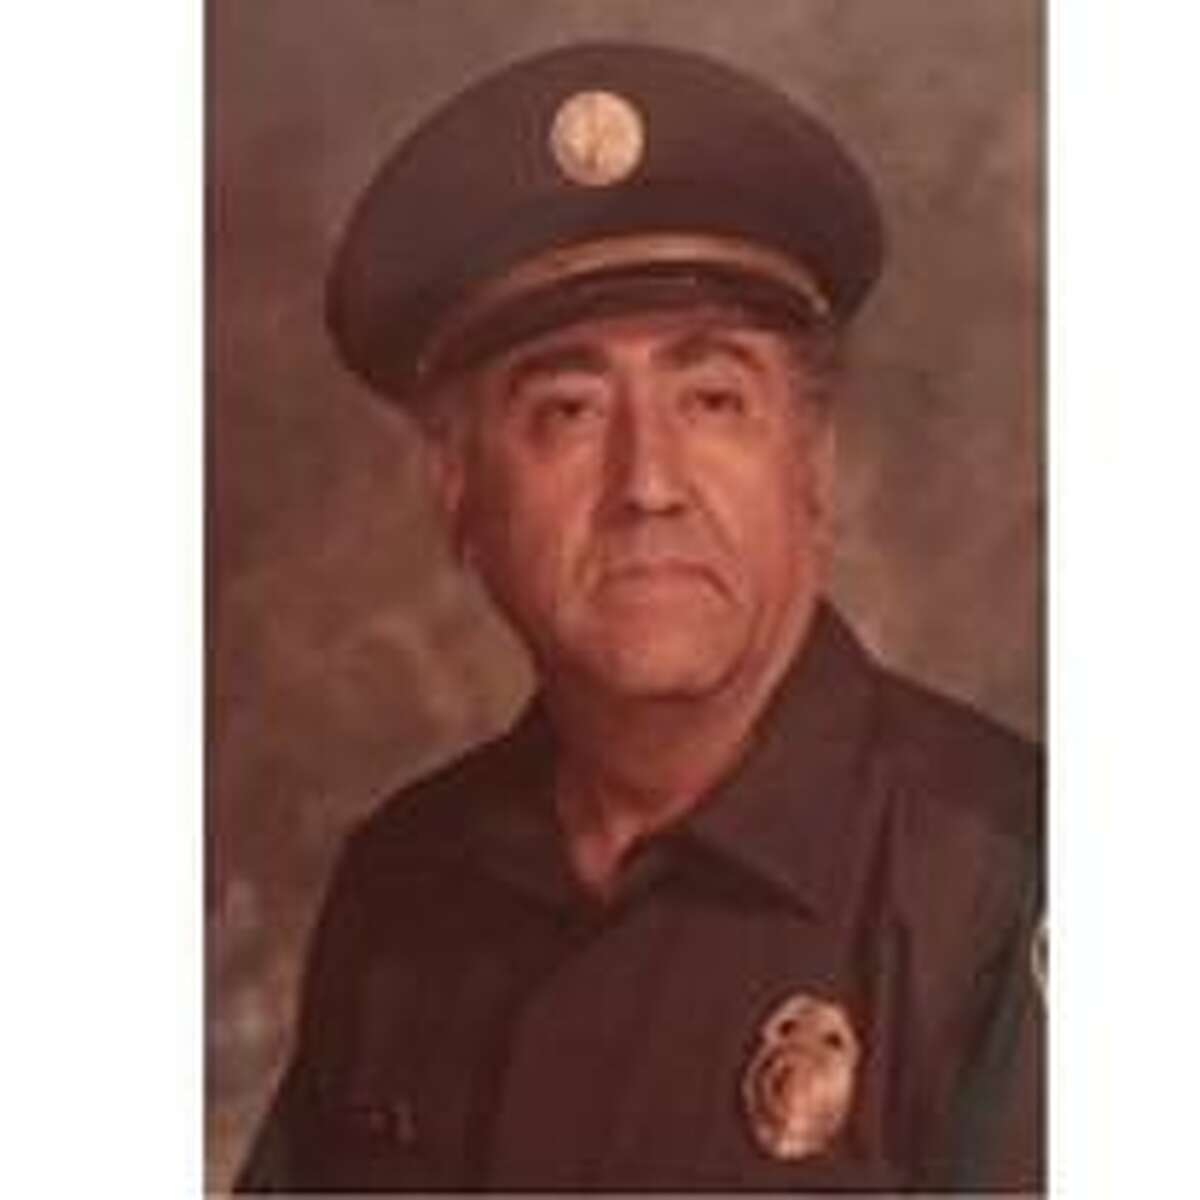 Armando C. Flores started with the San Antonio Fire Department in the mid-1950s. He stayed with the SAFD for more than 30 years.